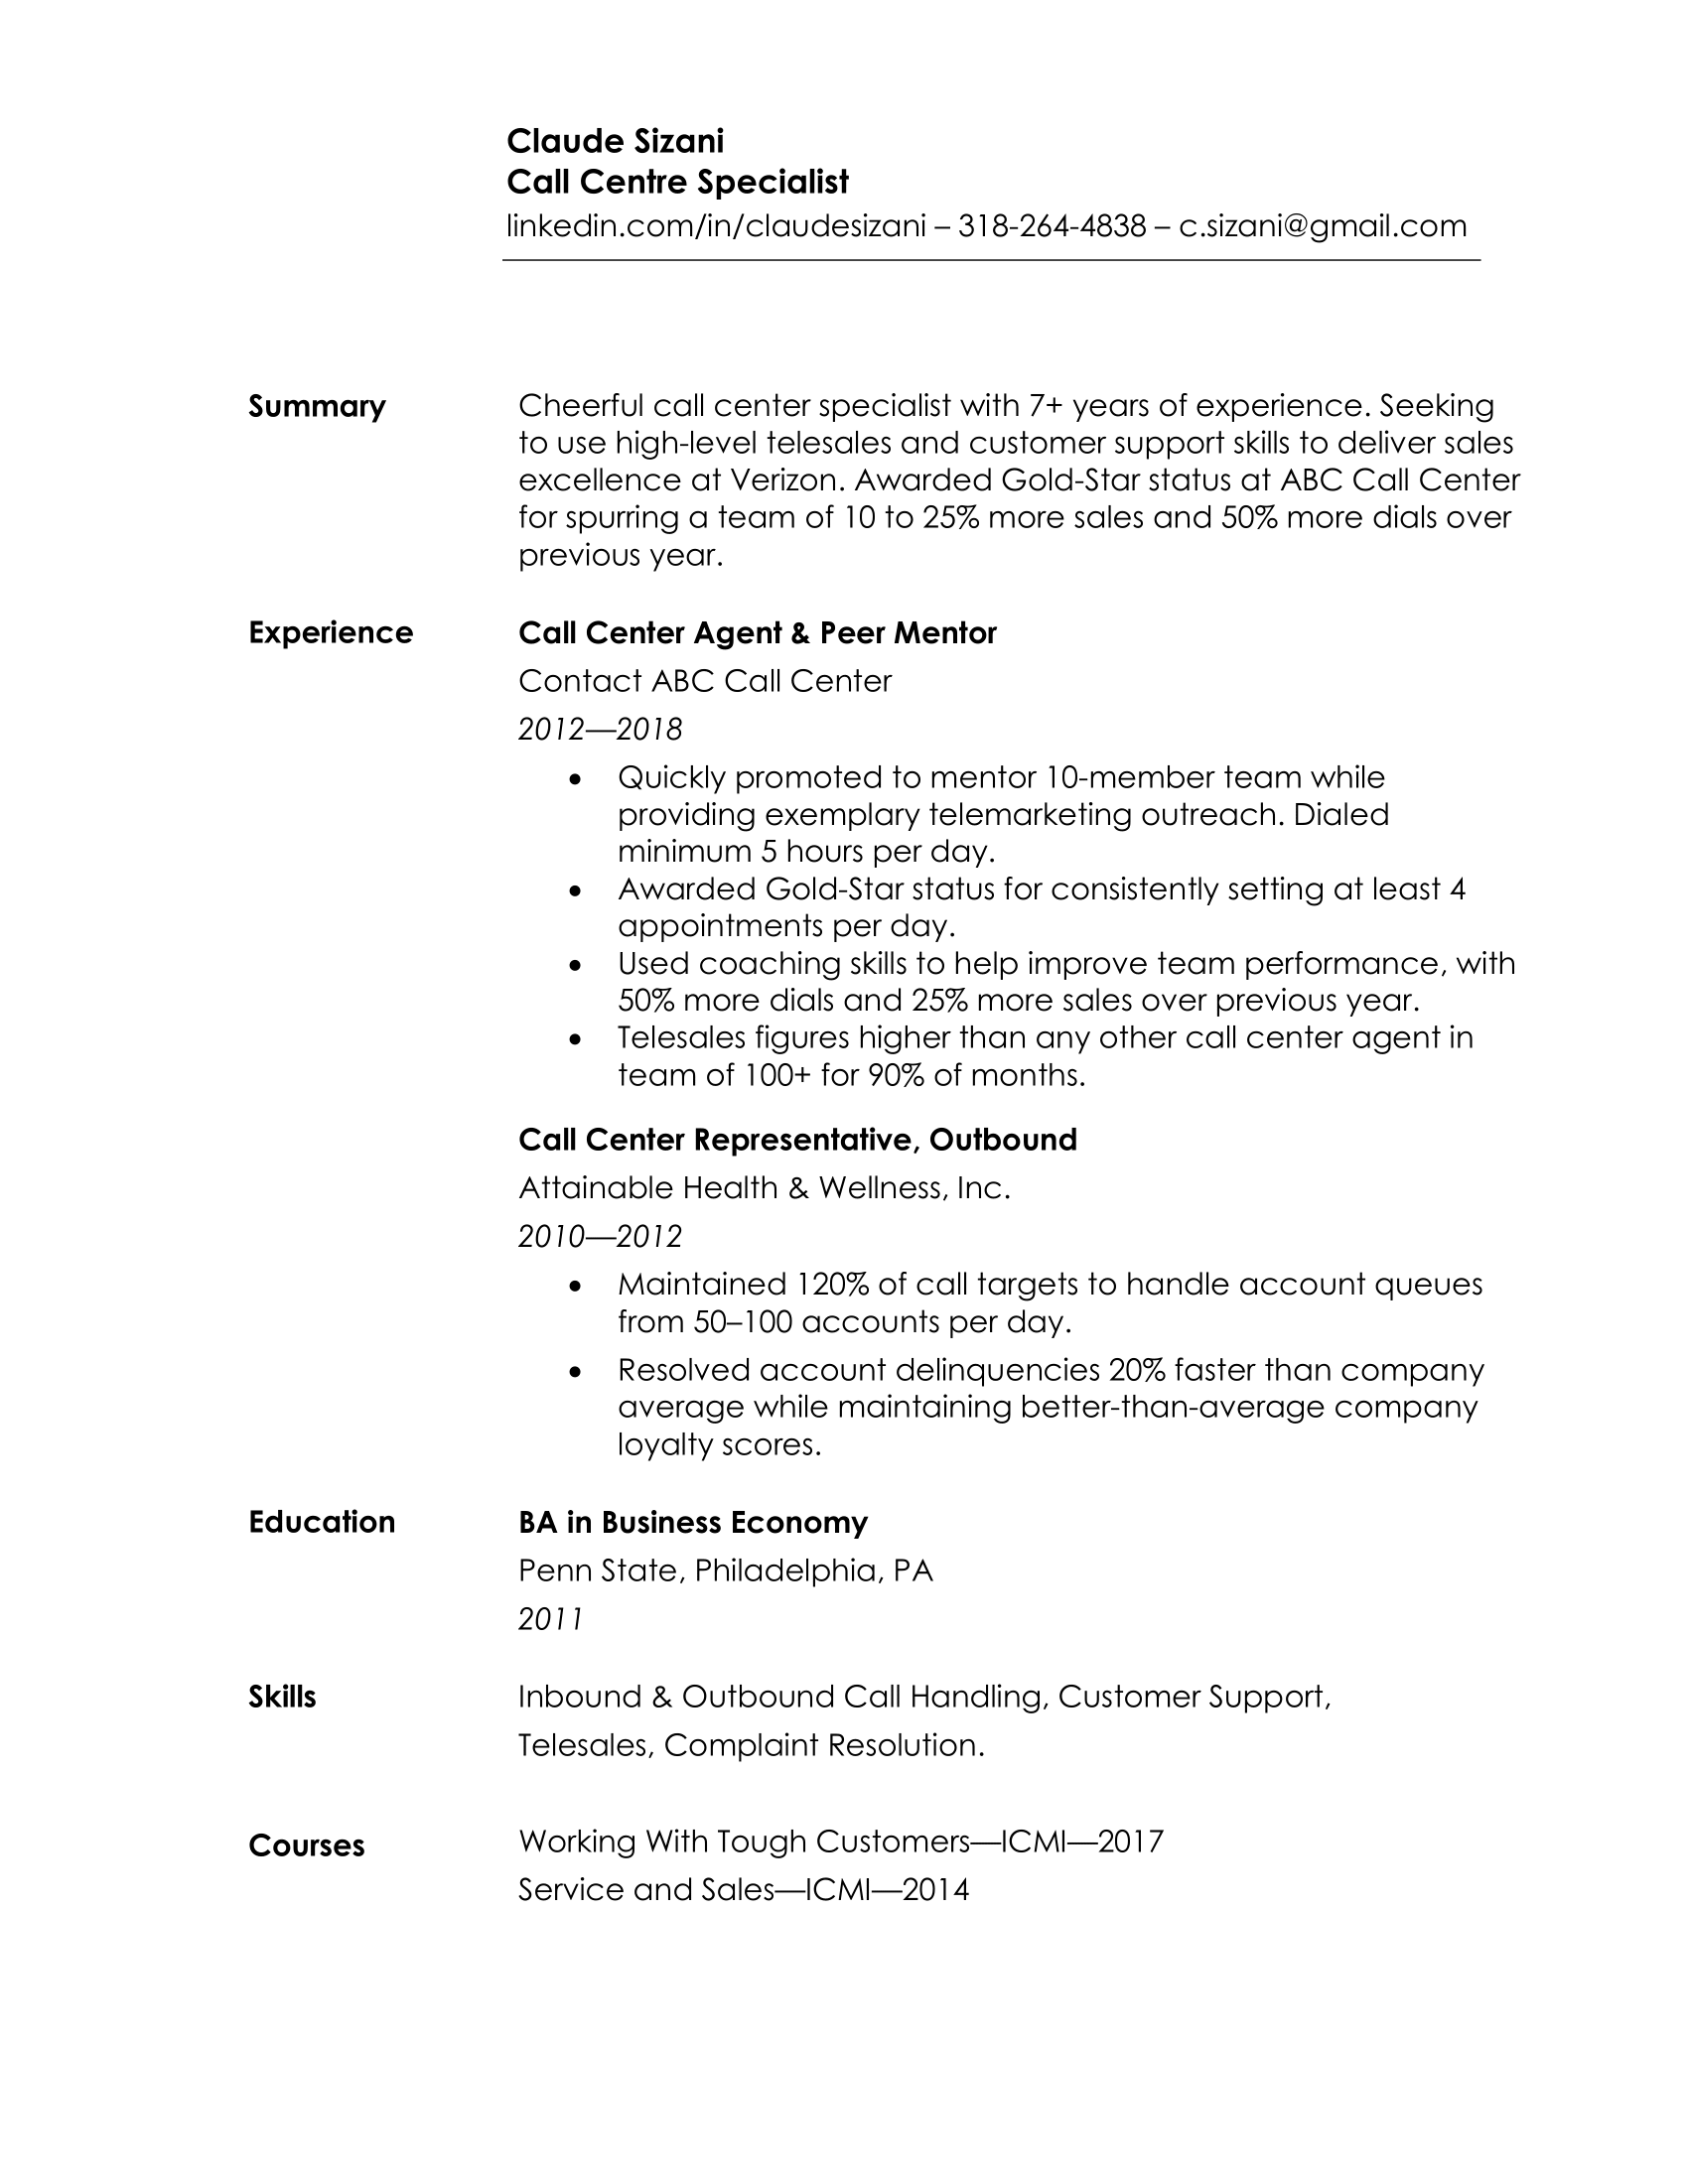 Best Resume Format For A Professional Resume In 2020